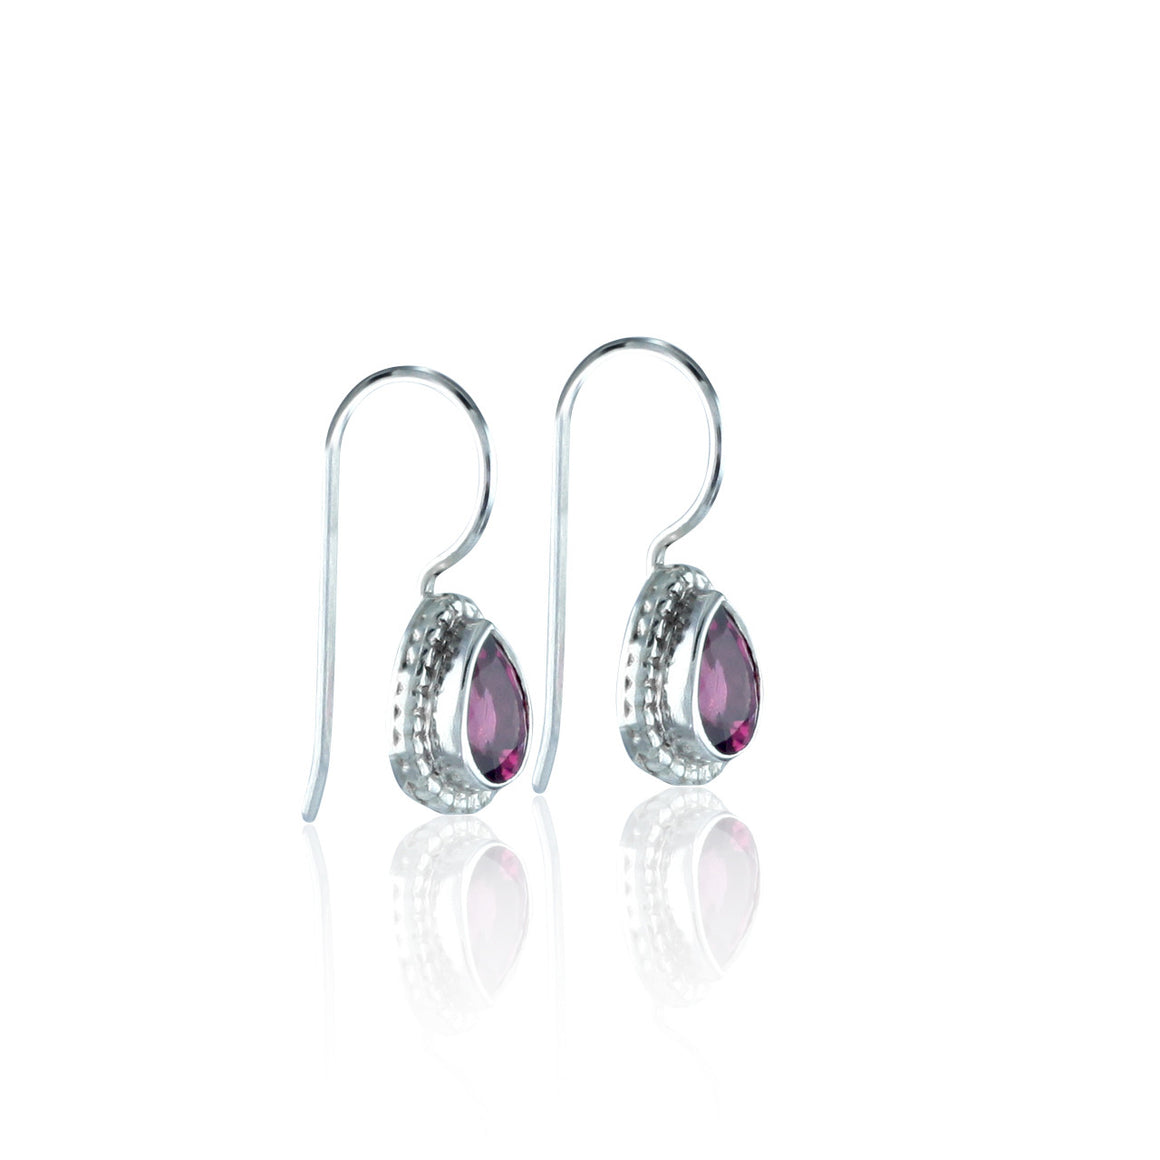 Rhodolite Garnet Frenchwire Earrings